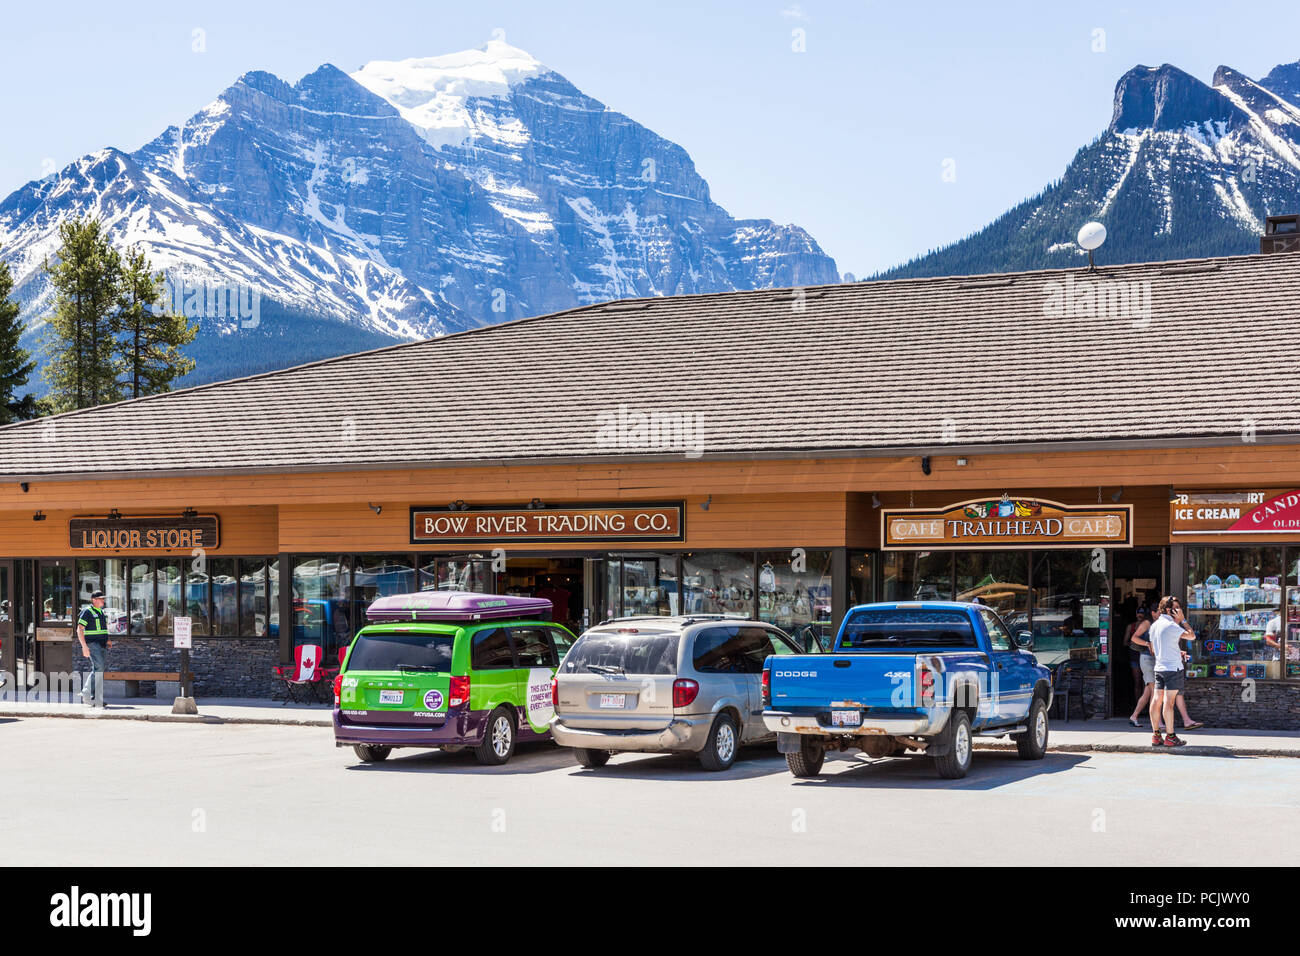 Shopping centre in the town of Lake Louise, Alberta, Canada - Stock Image